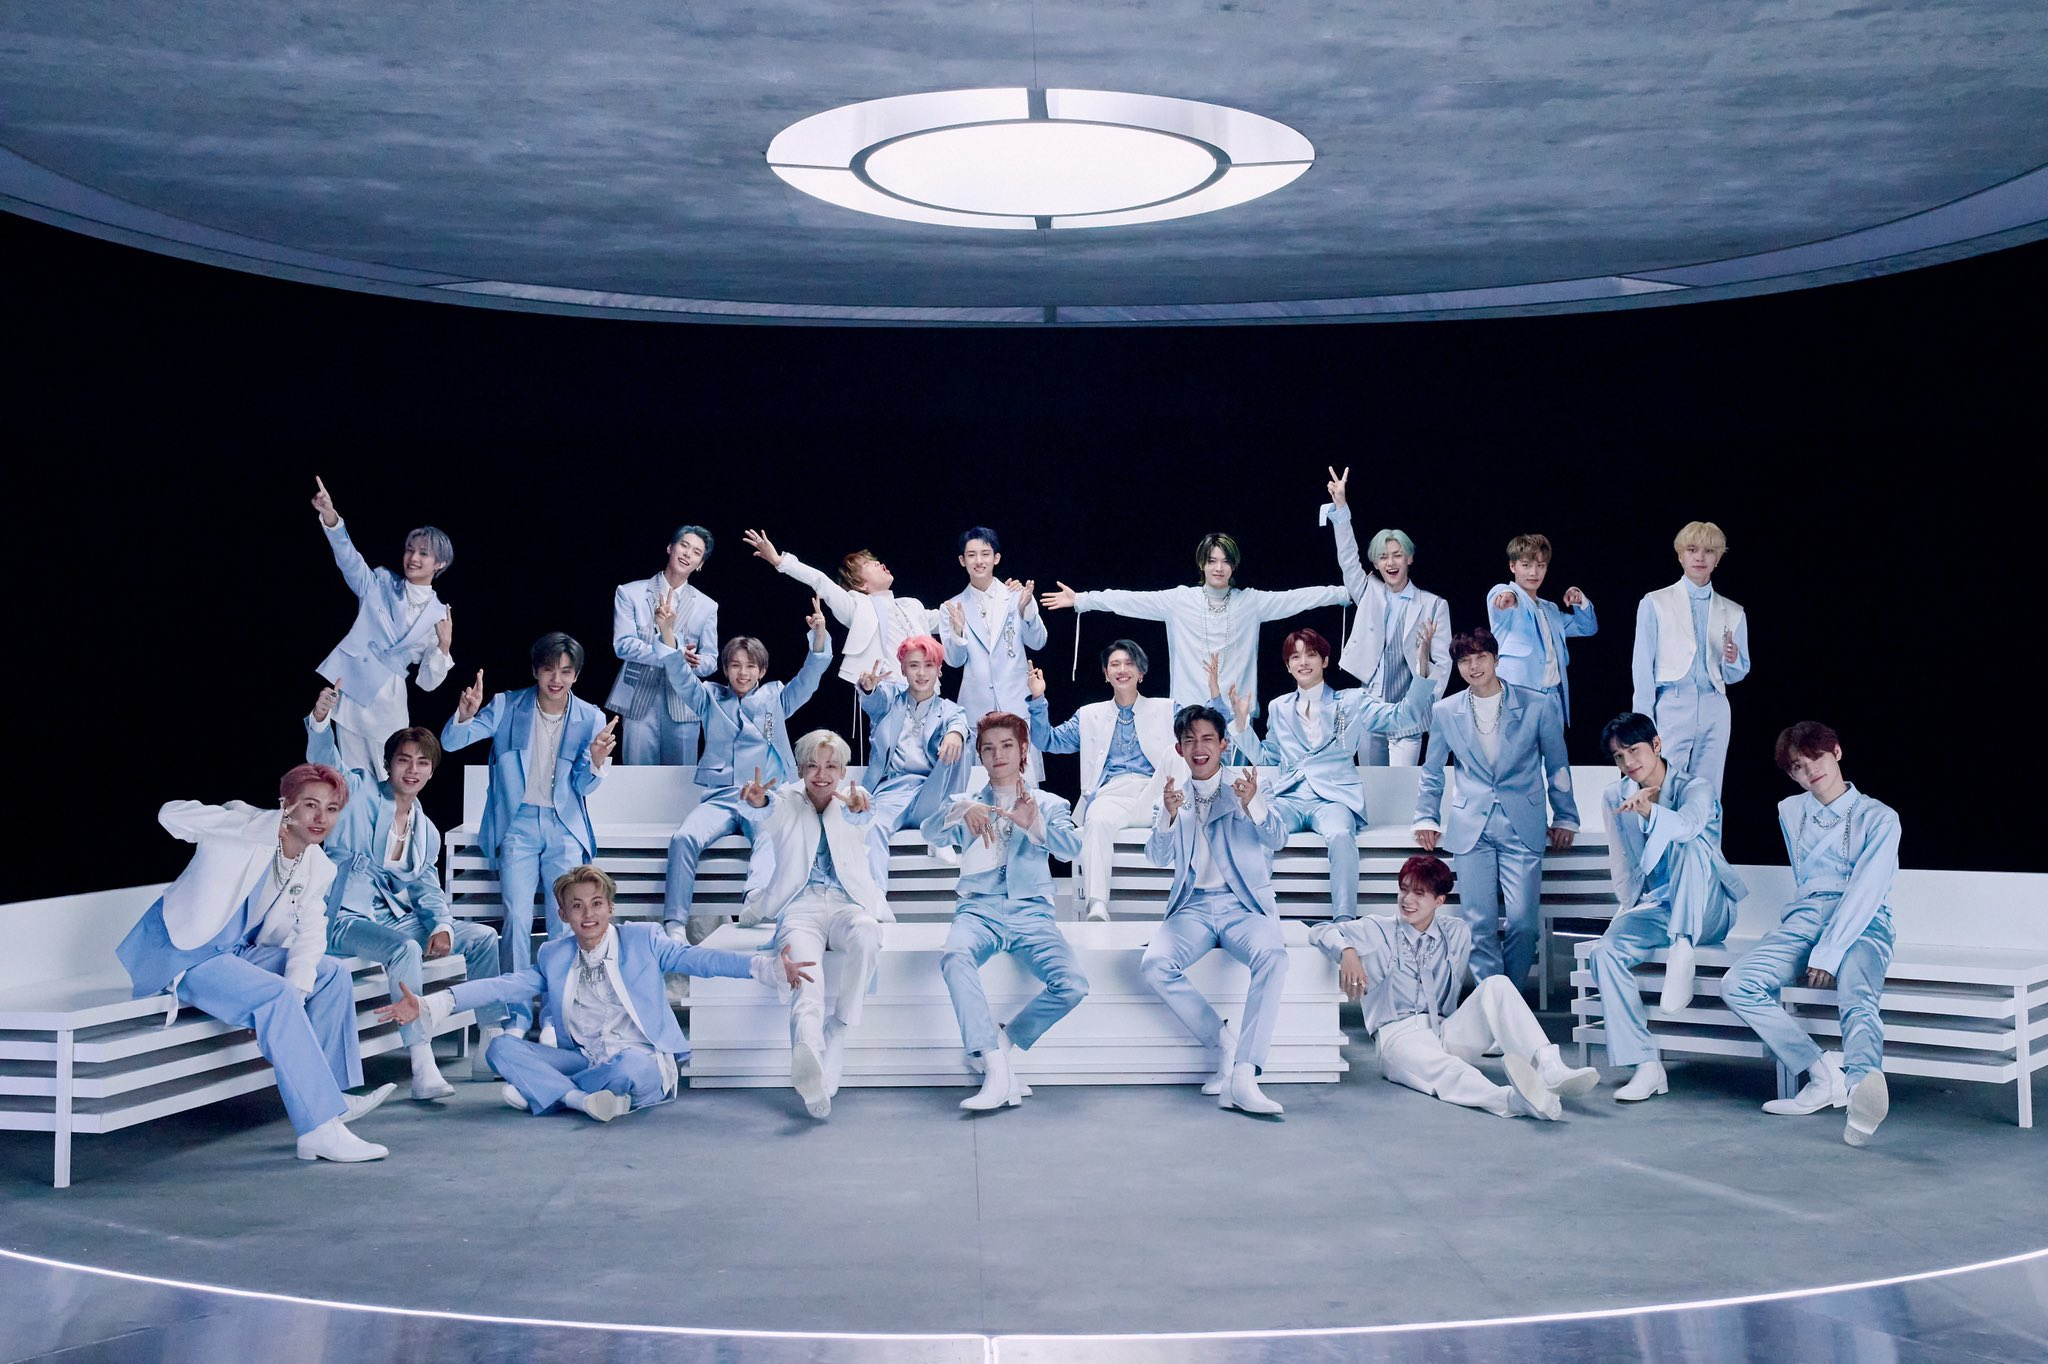 nct 2020 year party @NCTsmtown